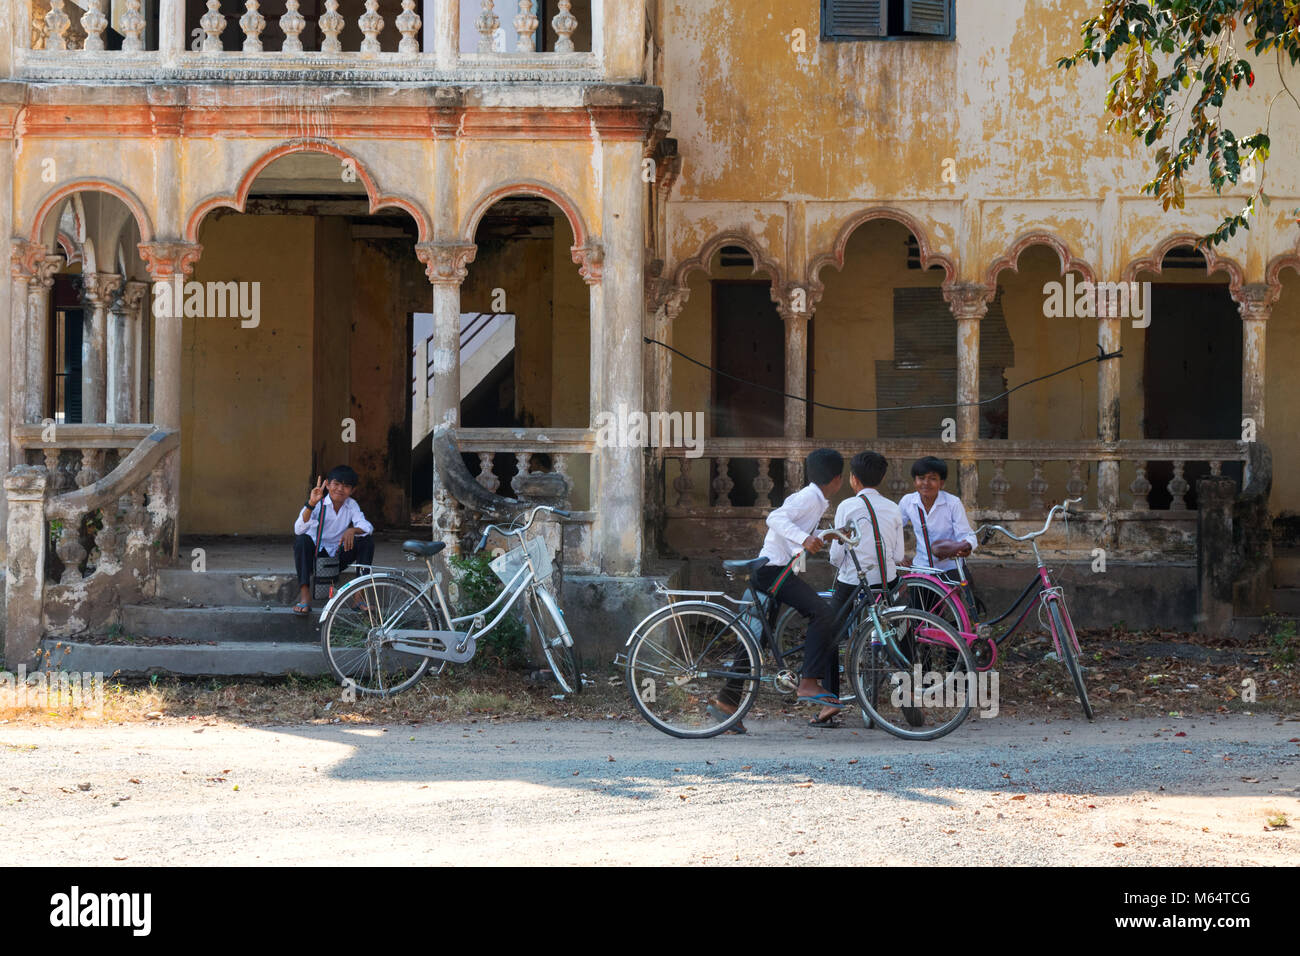 Children playing outside an old french colonial building, Angkor Borei, Kampot province Cambodia Asia - Stock Image